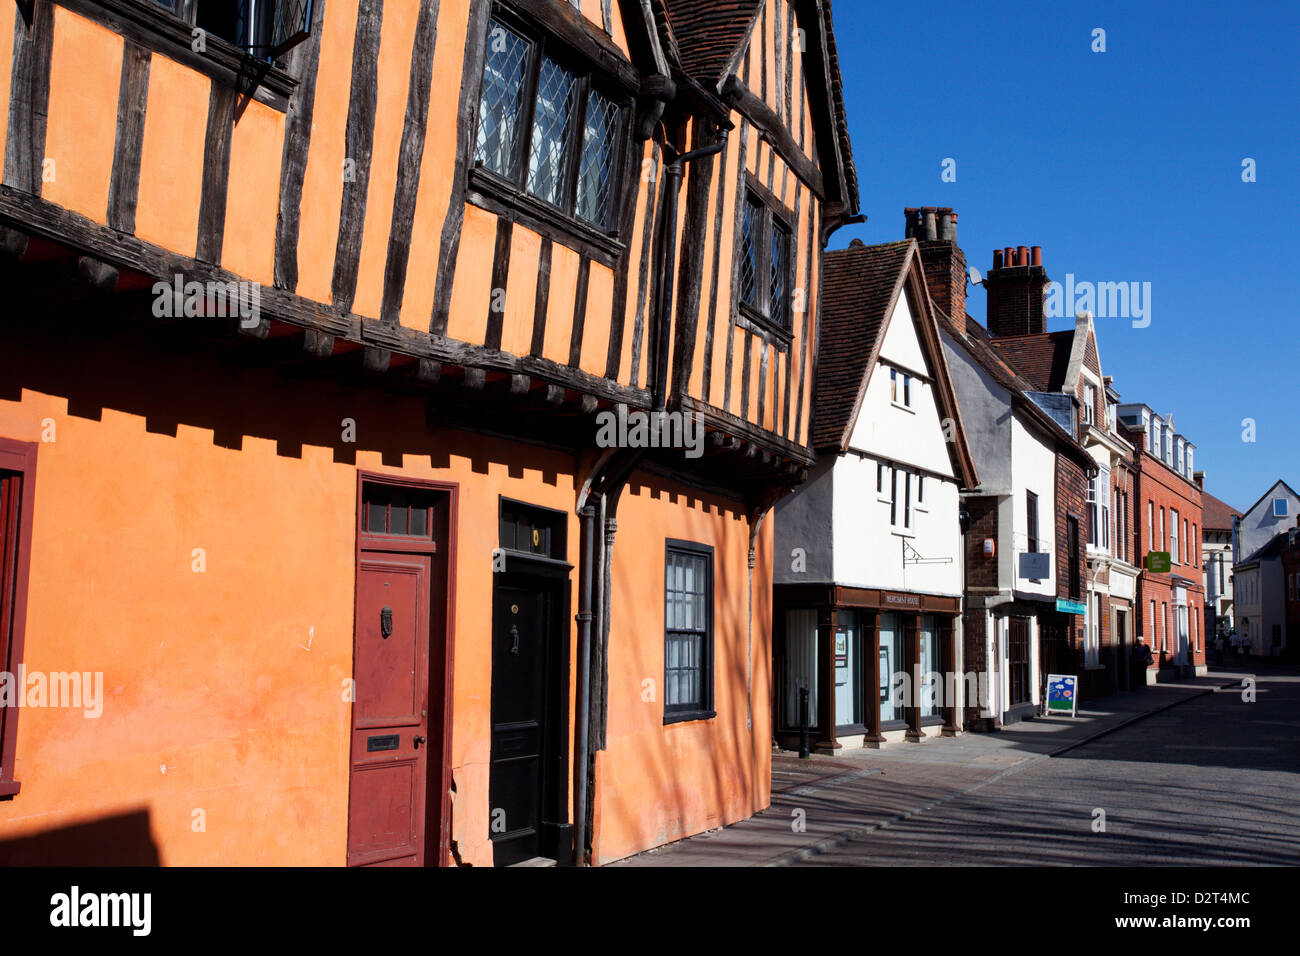 Half timbered buildings on Silent Street, Ipswich, Suffolk, England, United Kingdom, Europe - Stock Image